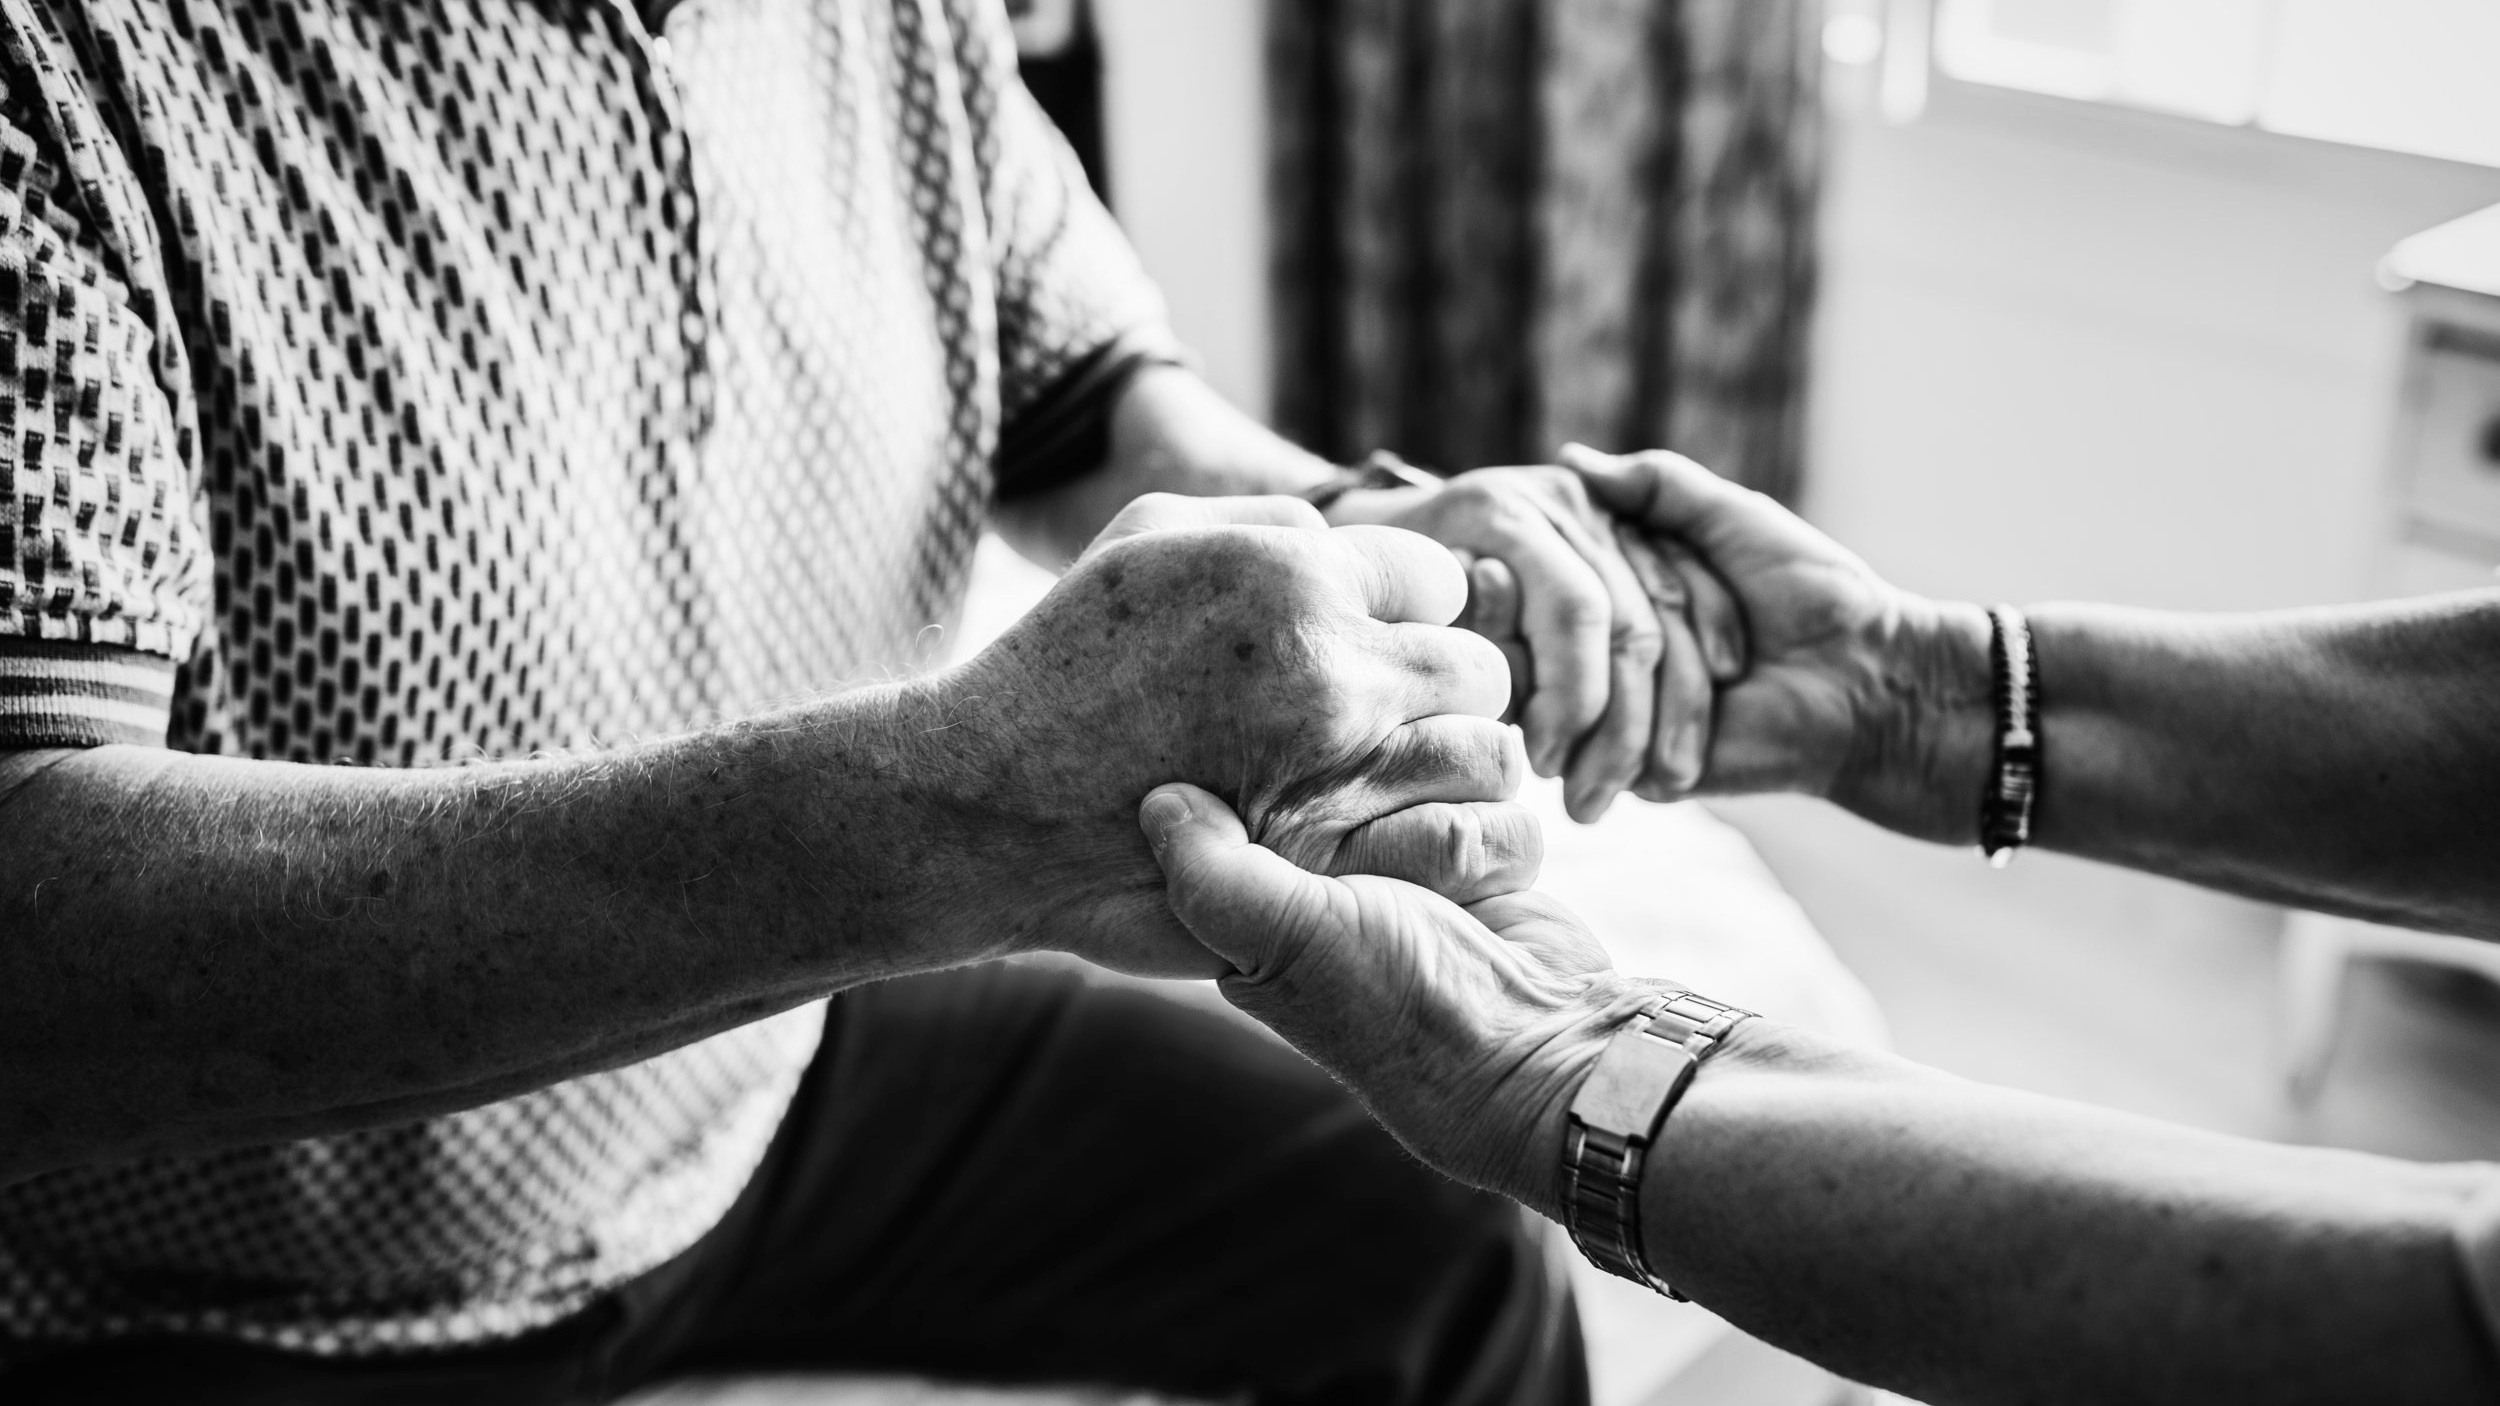 Companion Care - Companion care is primarily emotional support and companionship for seniors who are generally healthy, want to remain independent at home, and maintain a socially invigorating life.